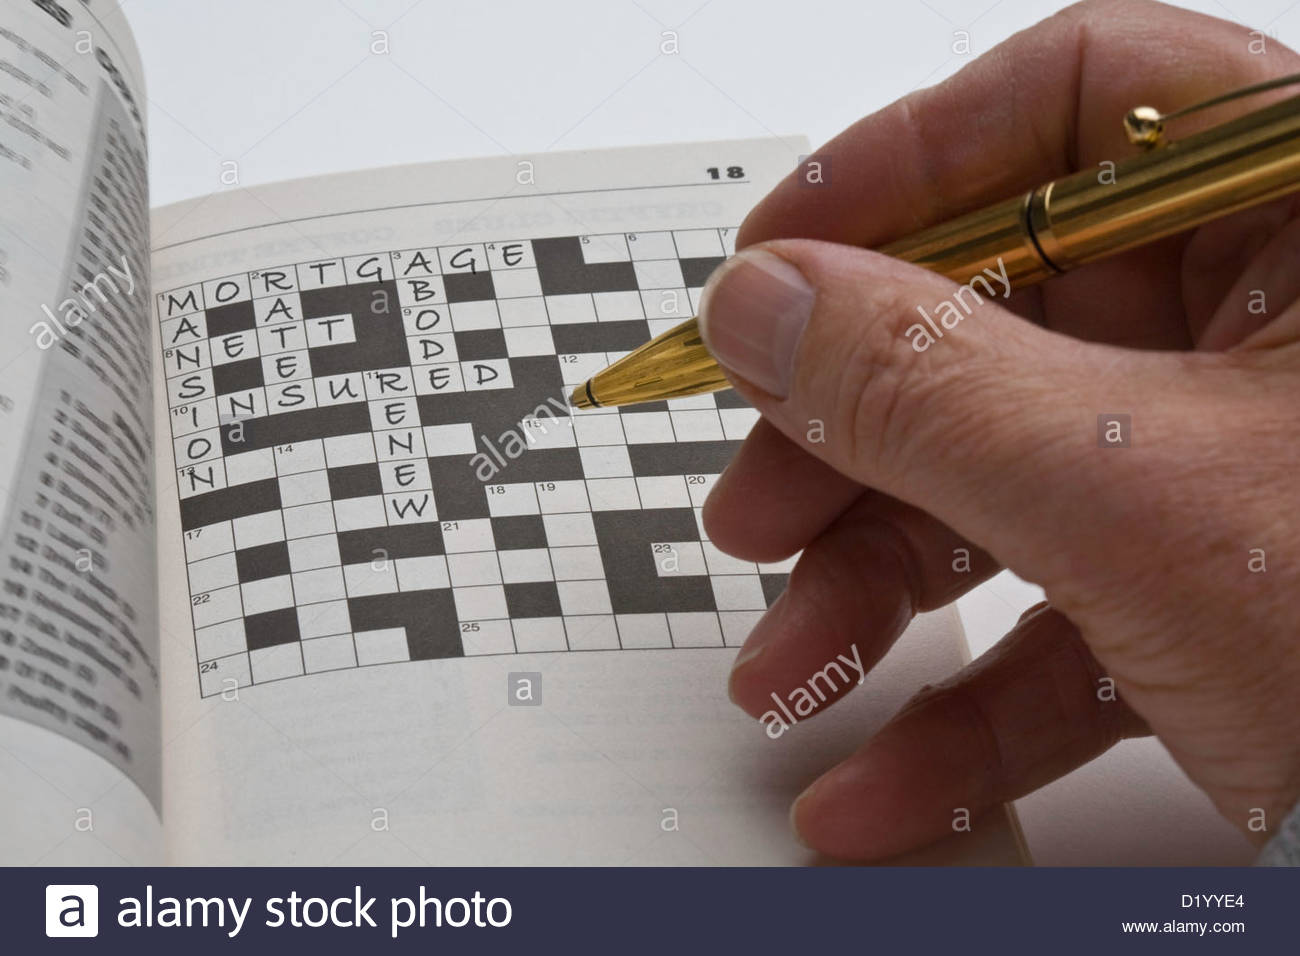 Man filling is a crossword puzzle relating to mortgages and insurance. - Stock Image